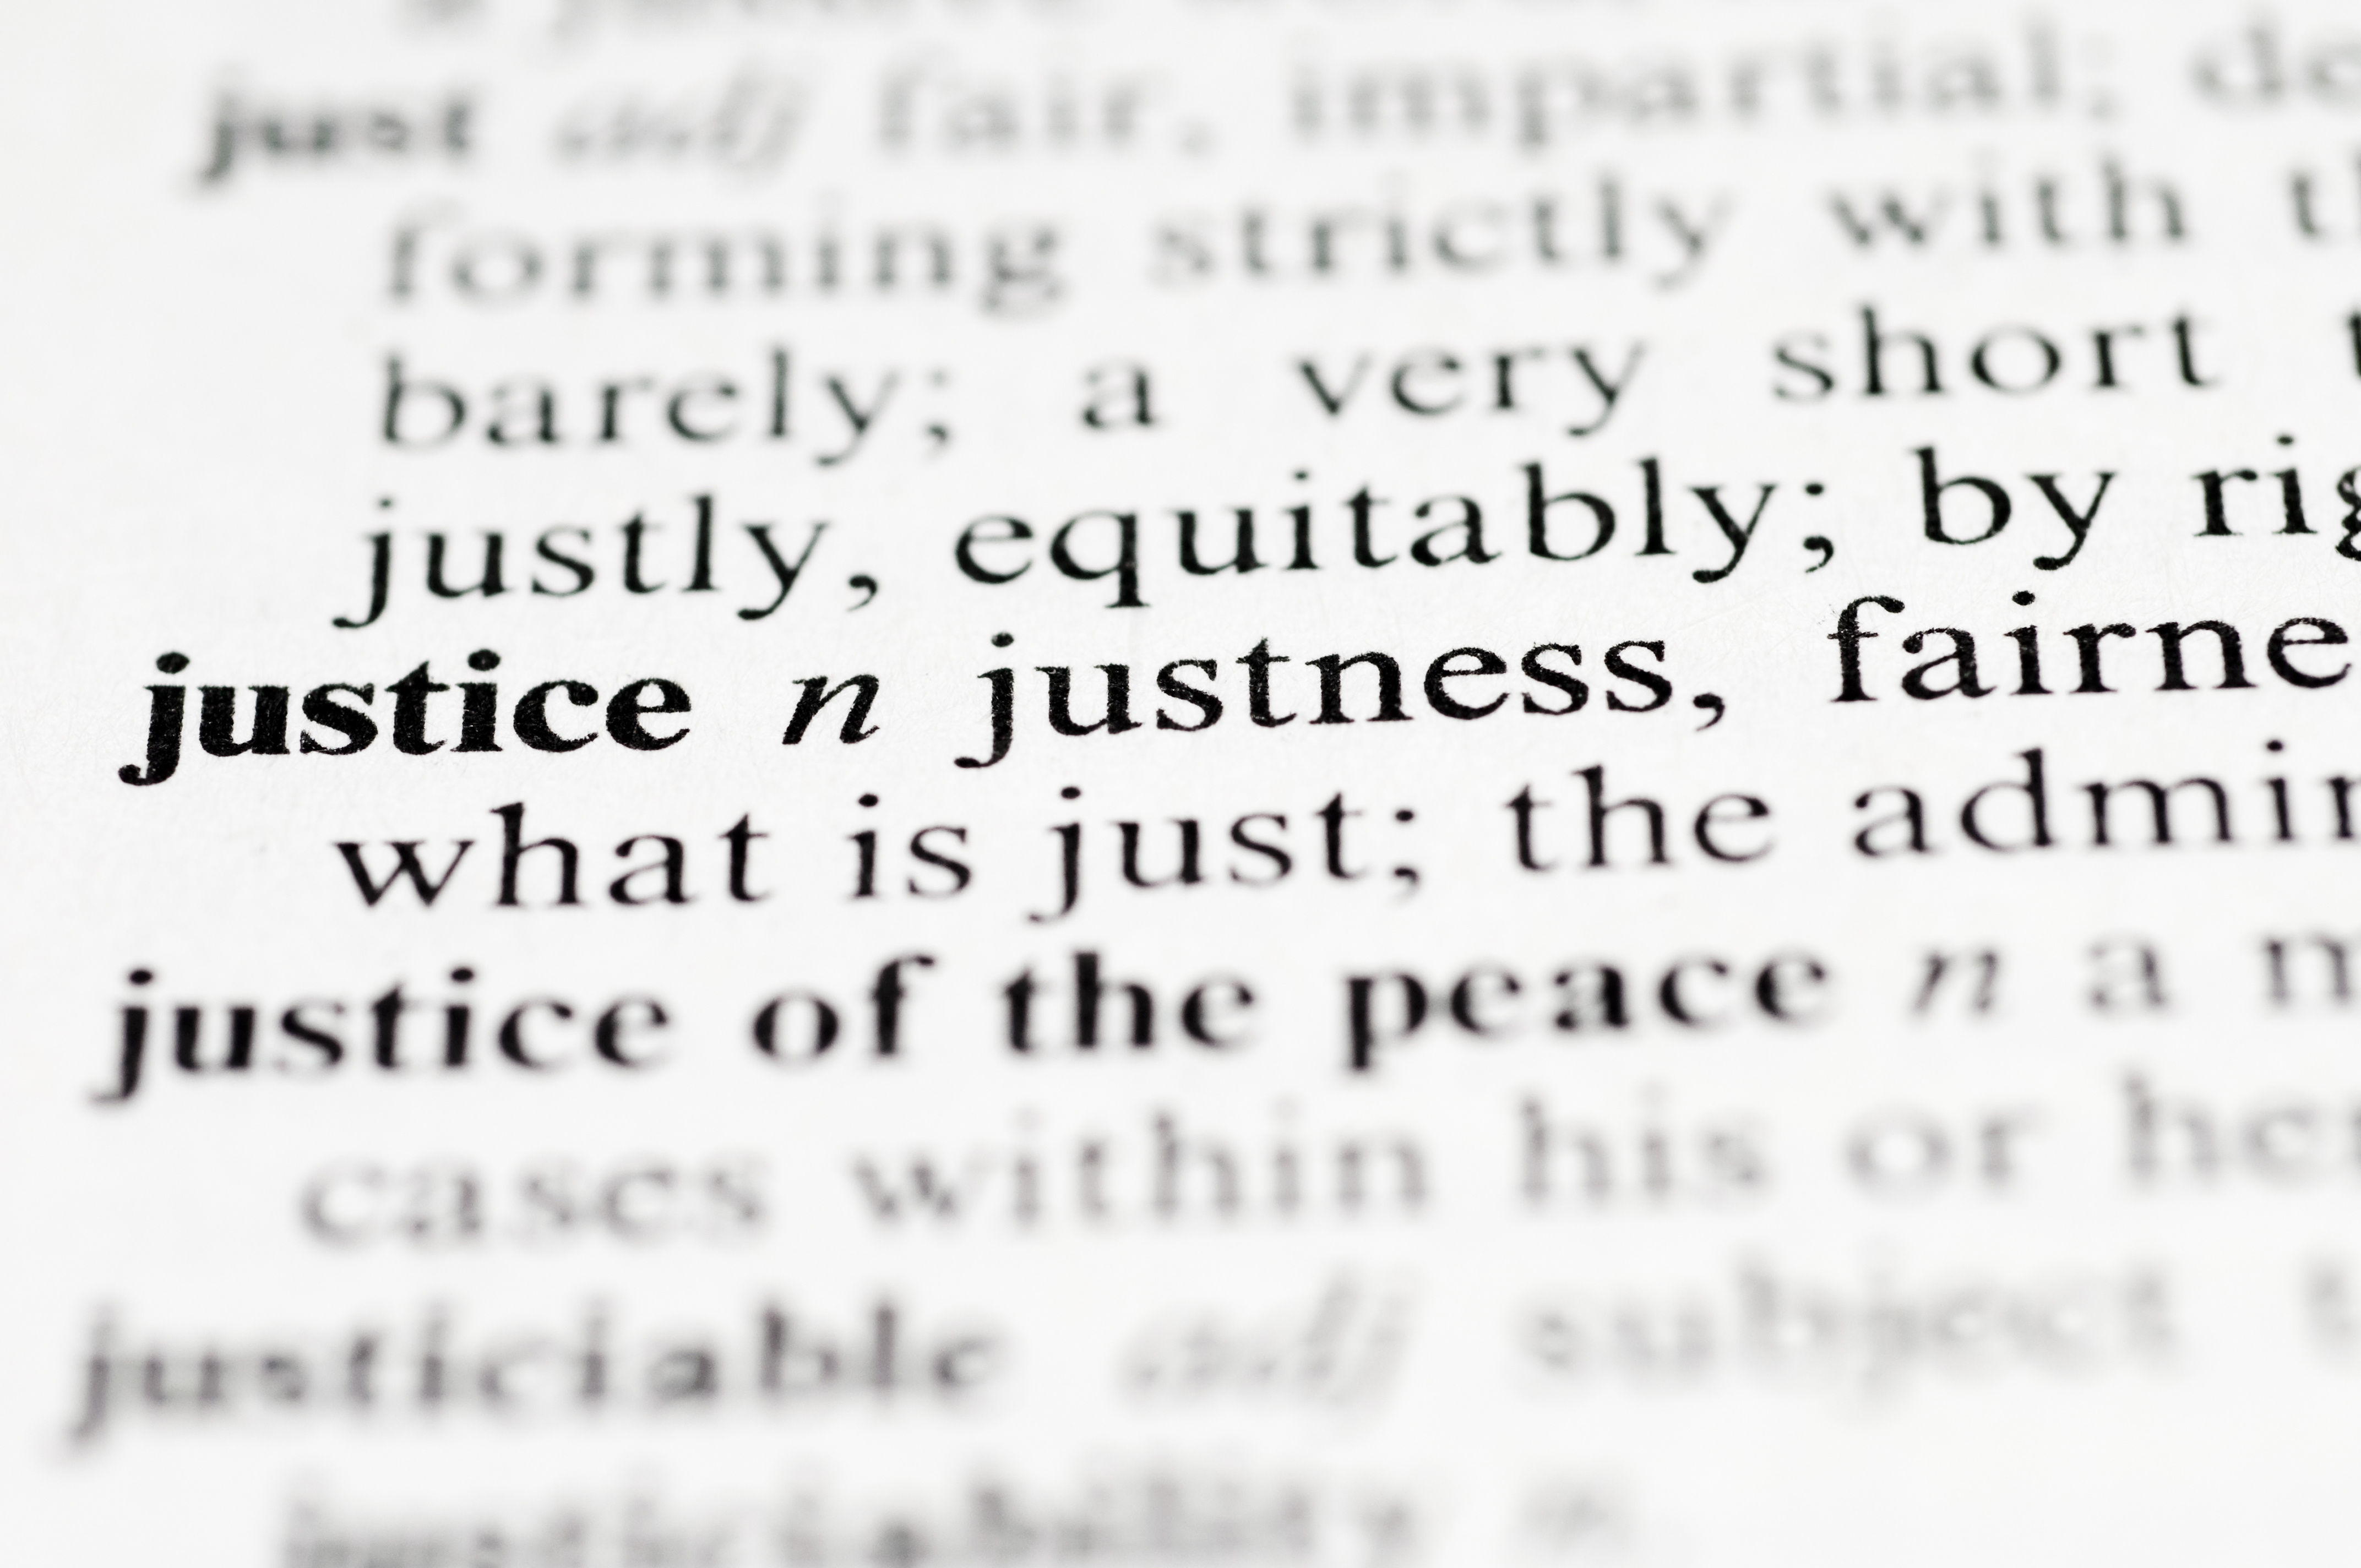 What is justice 87